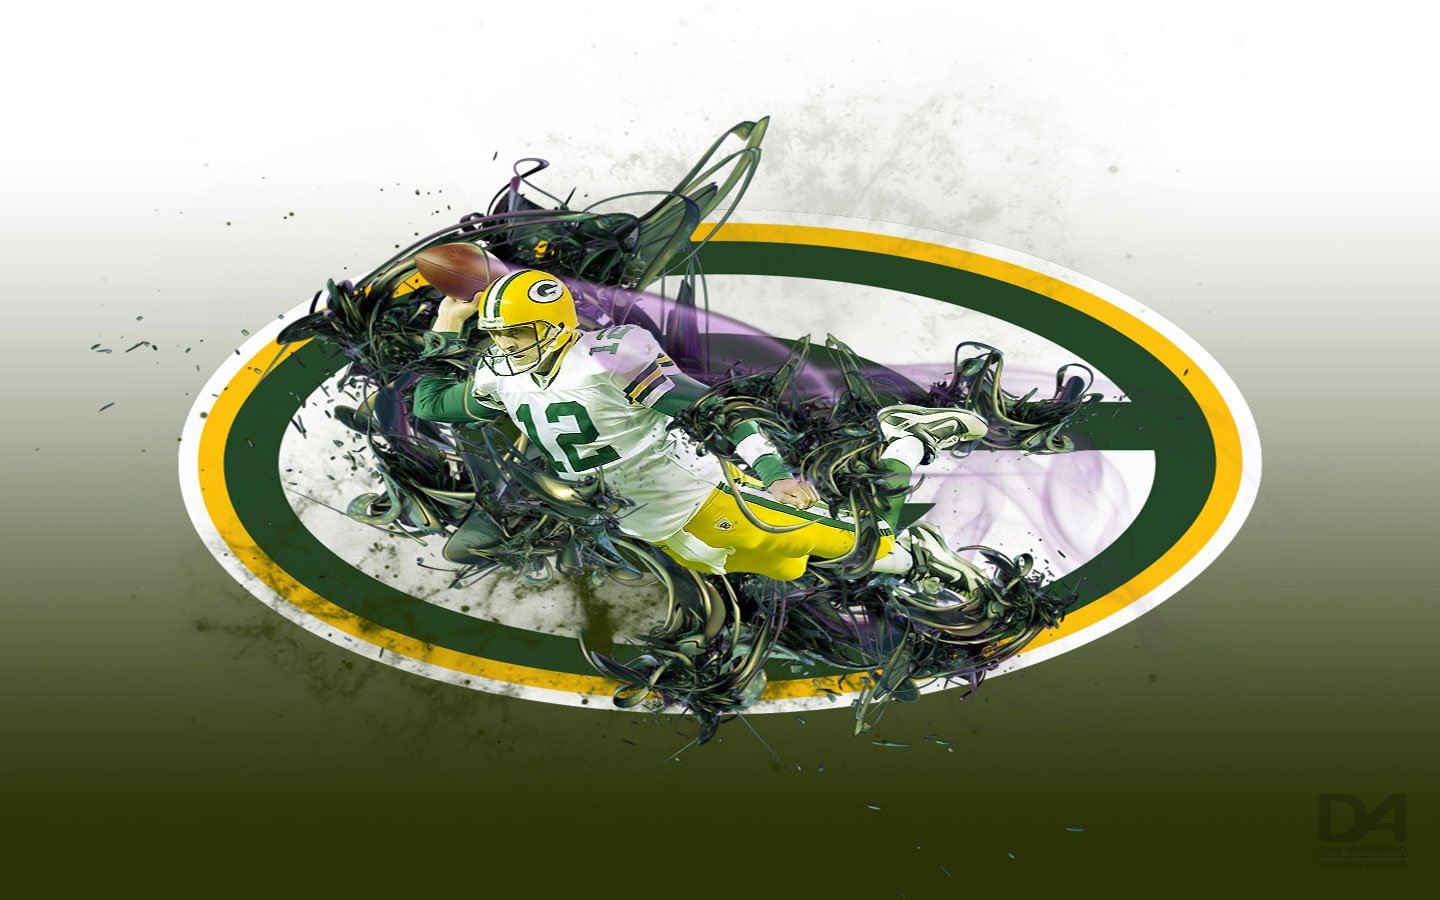 Free Download Green Bay Packers Hd Background Green Bay Packers Wallpapers 1440x900 For Your Desktop Mobile Tablet Explore 50 Green Bay Packers Wallpaper Free Nfl Wallpapers And Screensavers Green